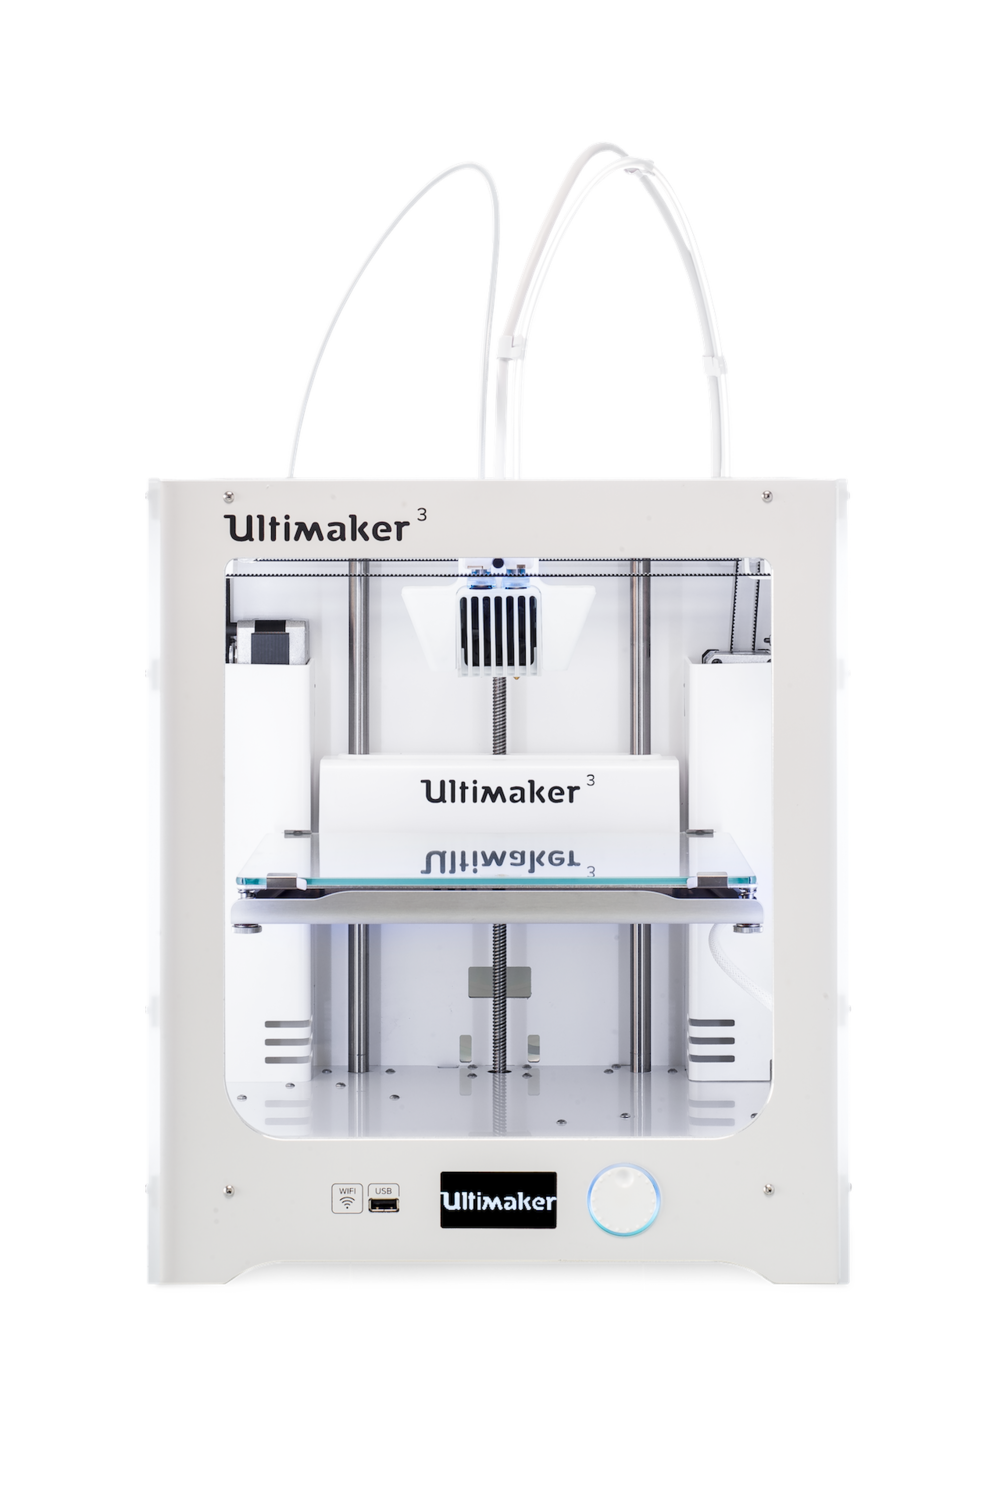 Ultimaker's New Ultimaker 3 Dual-Extrusion 3D Printer on hvac diagrams, switch diagrams, motor diagrams, engine diagrams, internet of things diagrams, gmc fuse box diagrams, smart car diagrams, electrical diagrams, lighting diagrams, pinout diagrams, transformer diagrams, friendship bracelet diagrams, series and parallel circuits diagrams, electronic circuit diagrams, sincgars radio configurations diagrams, troubleshooting diagrams, honda motorcycle repair diagrams, led circuit diagrams, battery diagrams,